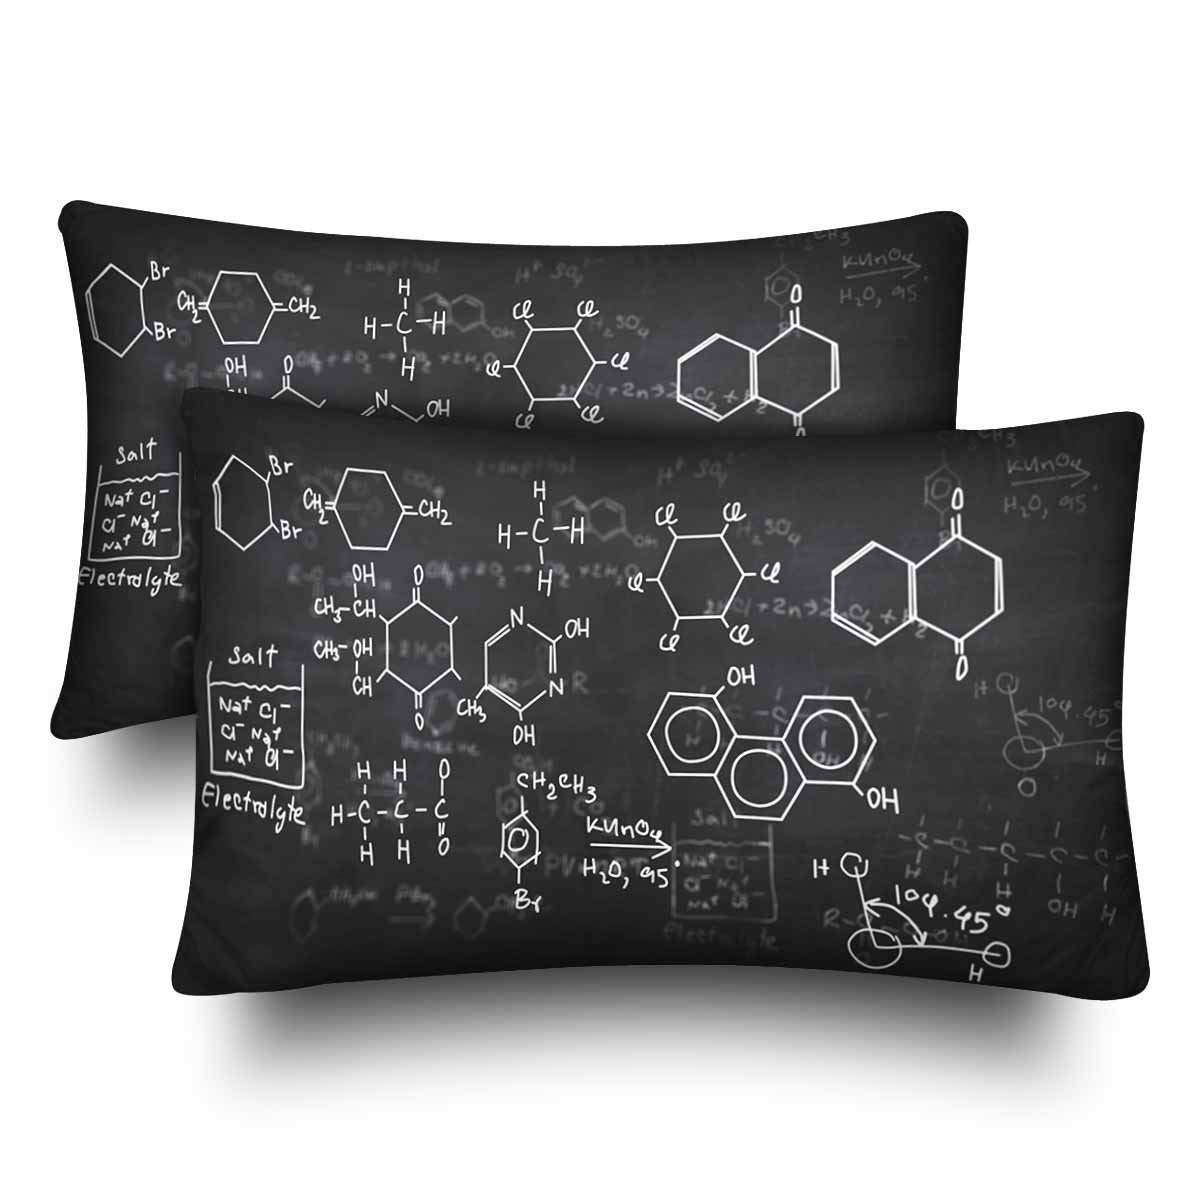 GCKG Chemical Formulas Chalkboard Pillow Cases Pillowcase 20x30 inches Set of 2 - image 4 of 4